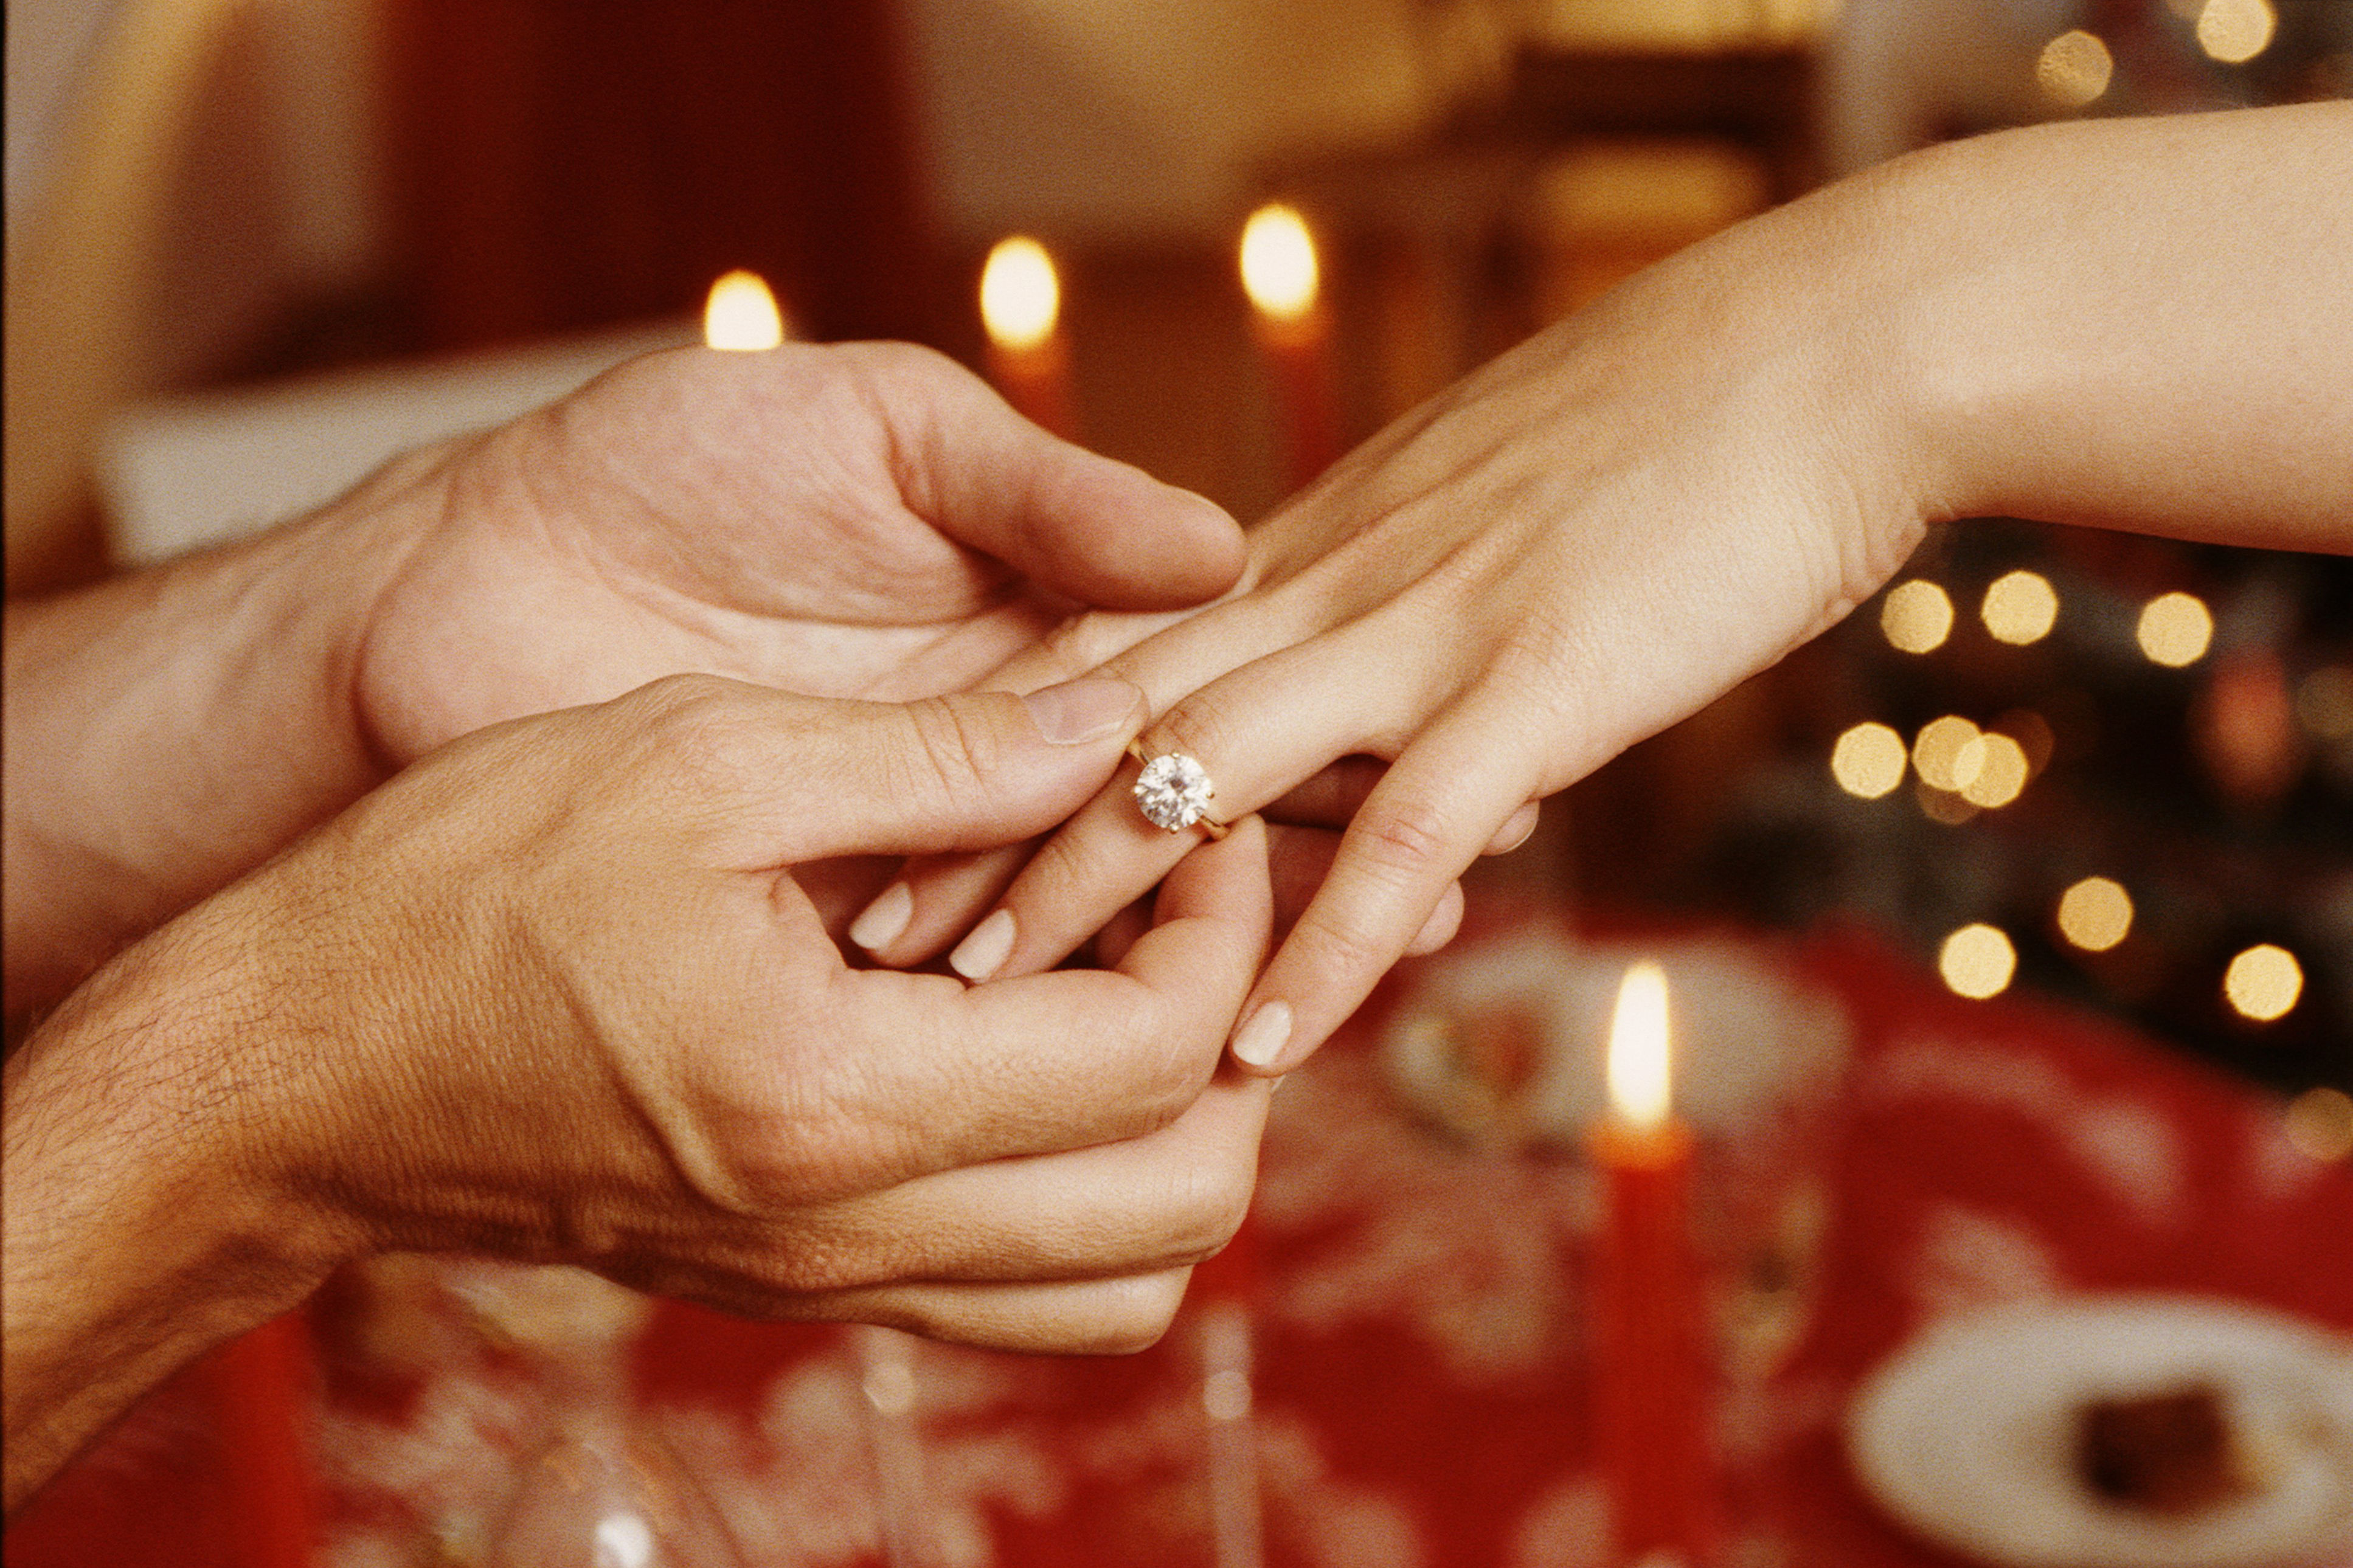 'Brides' Survey Finds the Average Couple Spent a Whopping $7,829 on an Engagement Ring in 2018